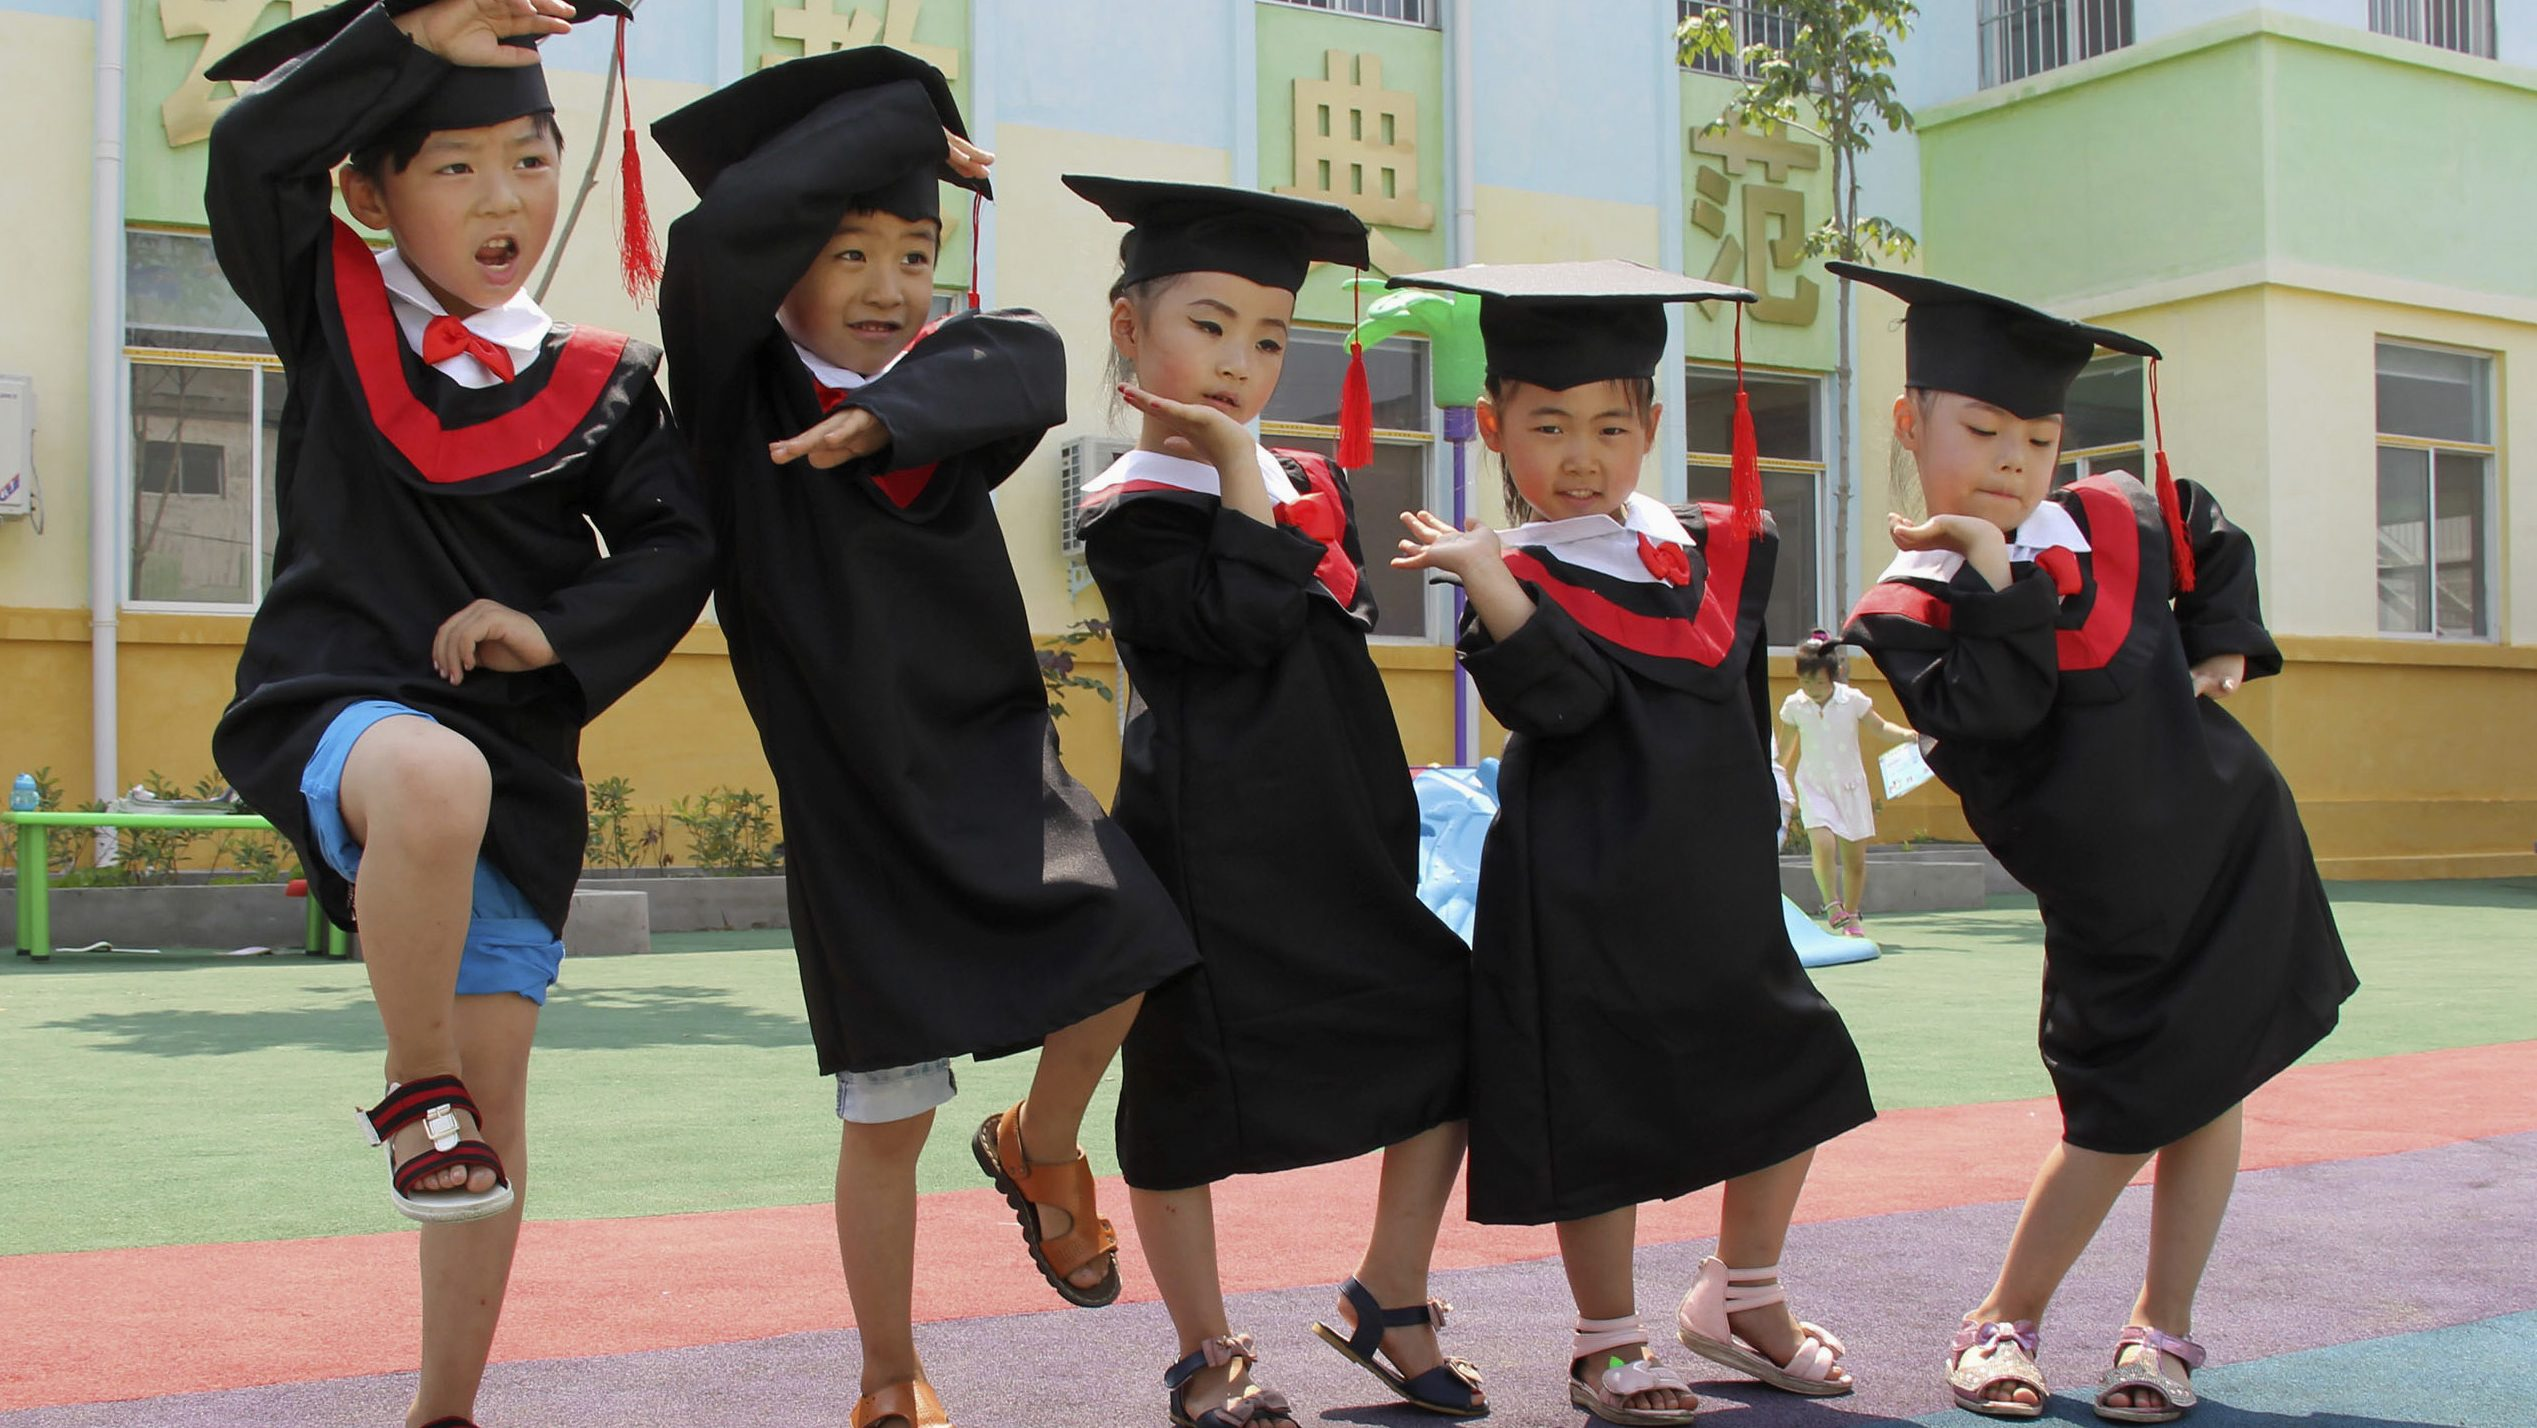 Children in gowns and mortarboards pose for pictures during their kindergarten graduation ceremony, in Wenxian county, Henan province July 2, 2014. Picture taken July 2, 2014. REUTERS/Stringer